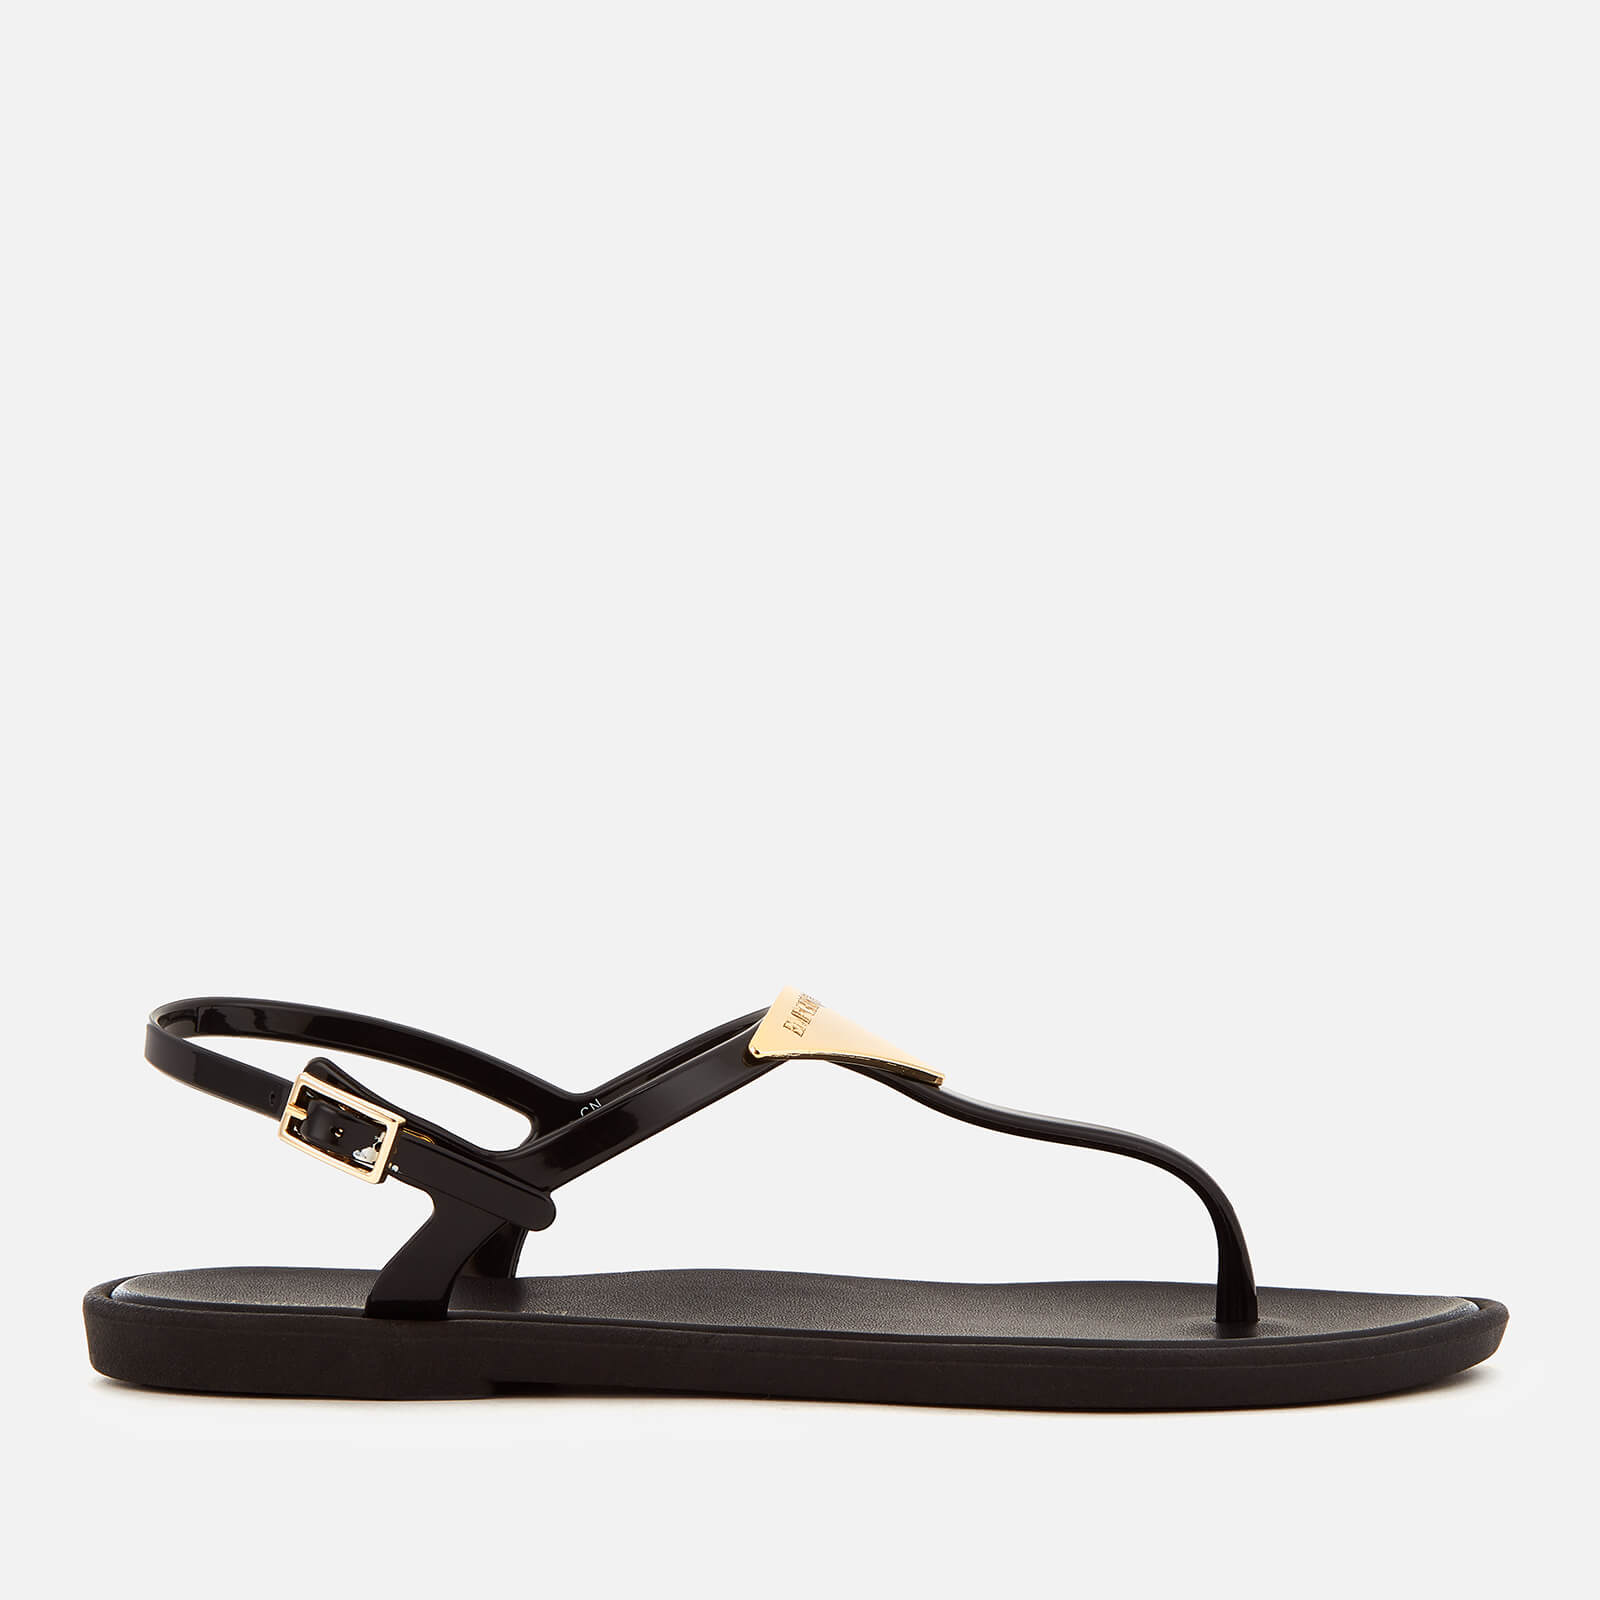 7a4628183de668 Emporio Armani Women s Coqui Soft Jelly Sandals - Black - Free UK Delivery  over £50